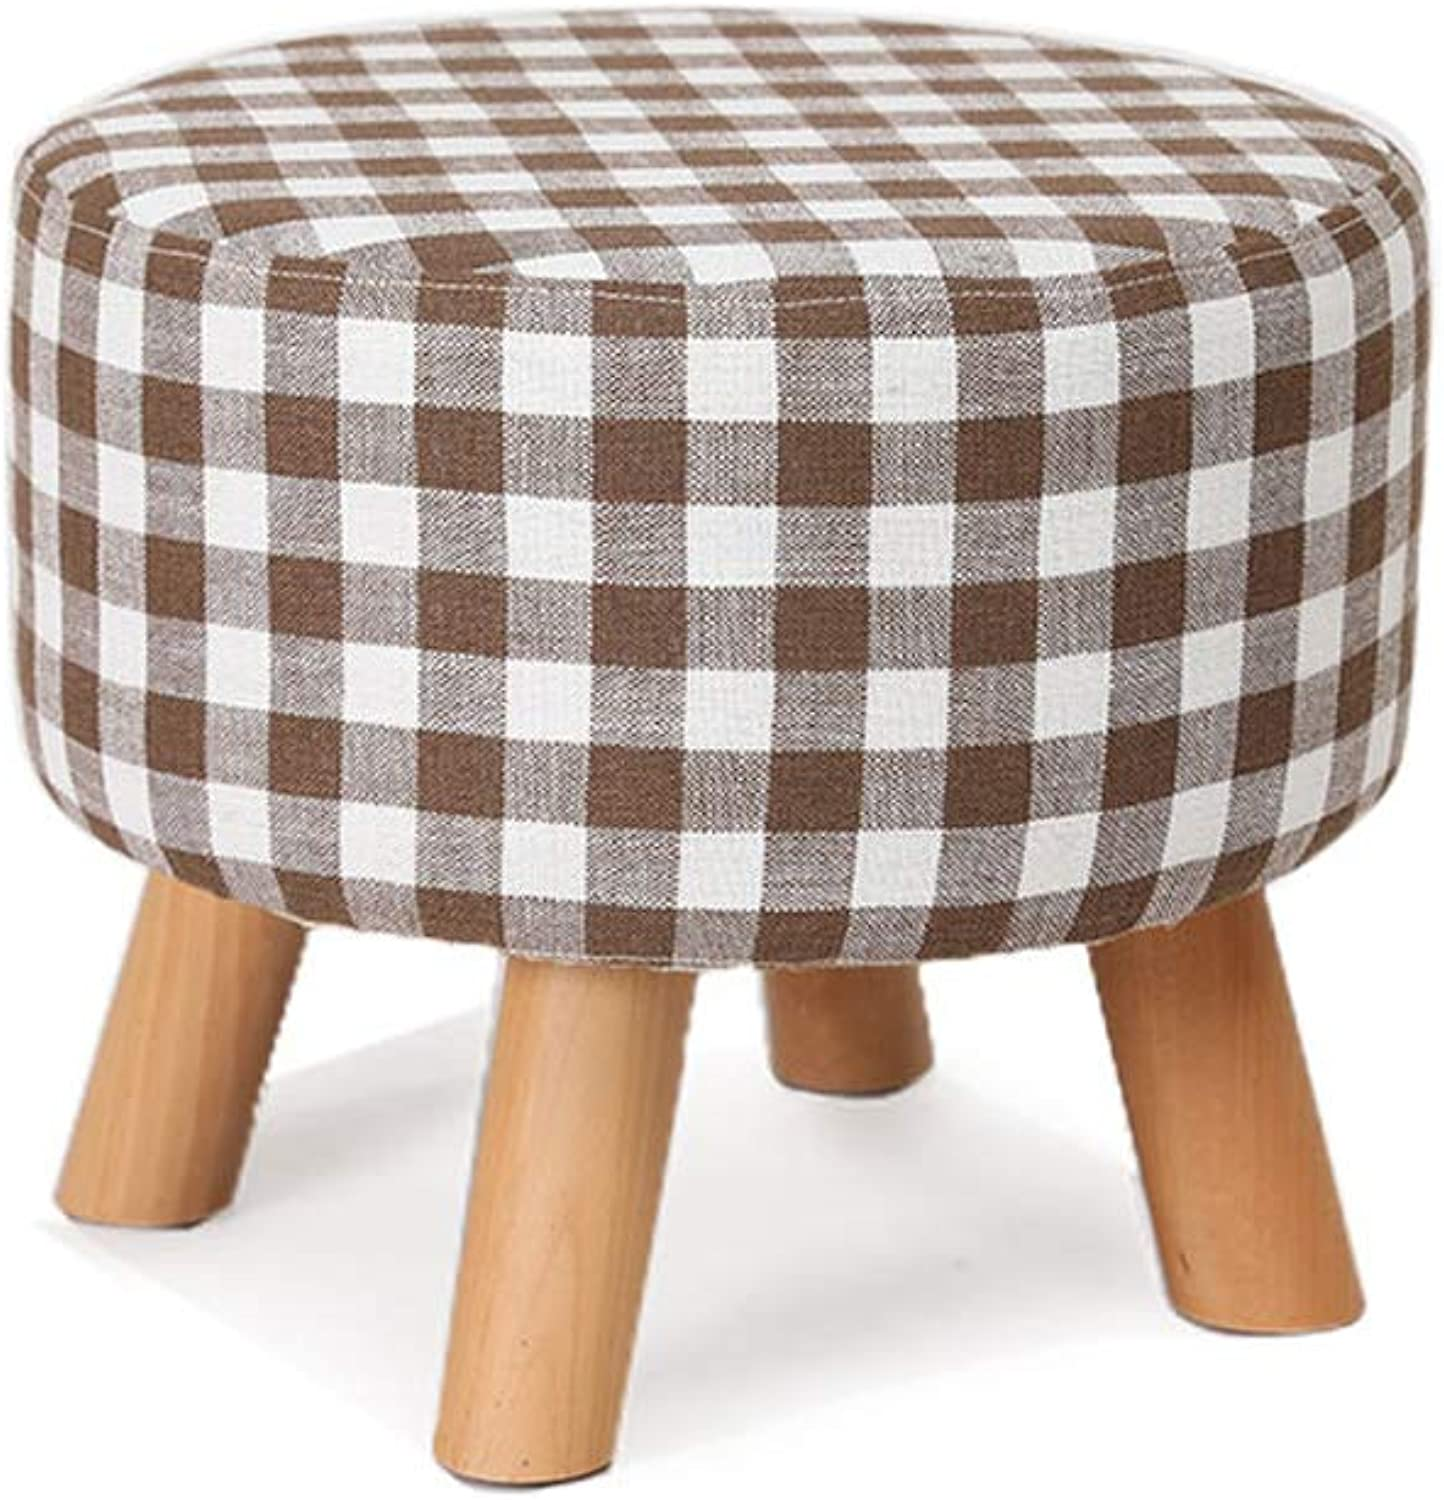 YANYUBIN Solid Wood Stool,Low Stool,Table and Stool,Changing His shoes Stool,Small Bench,Can Be Used for Changing shoes and Dining Stools (color   Style)